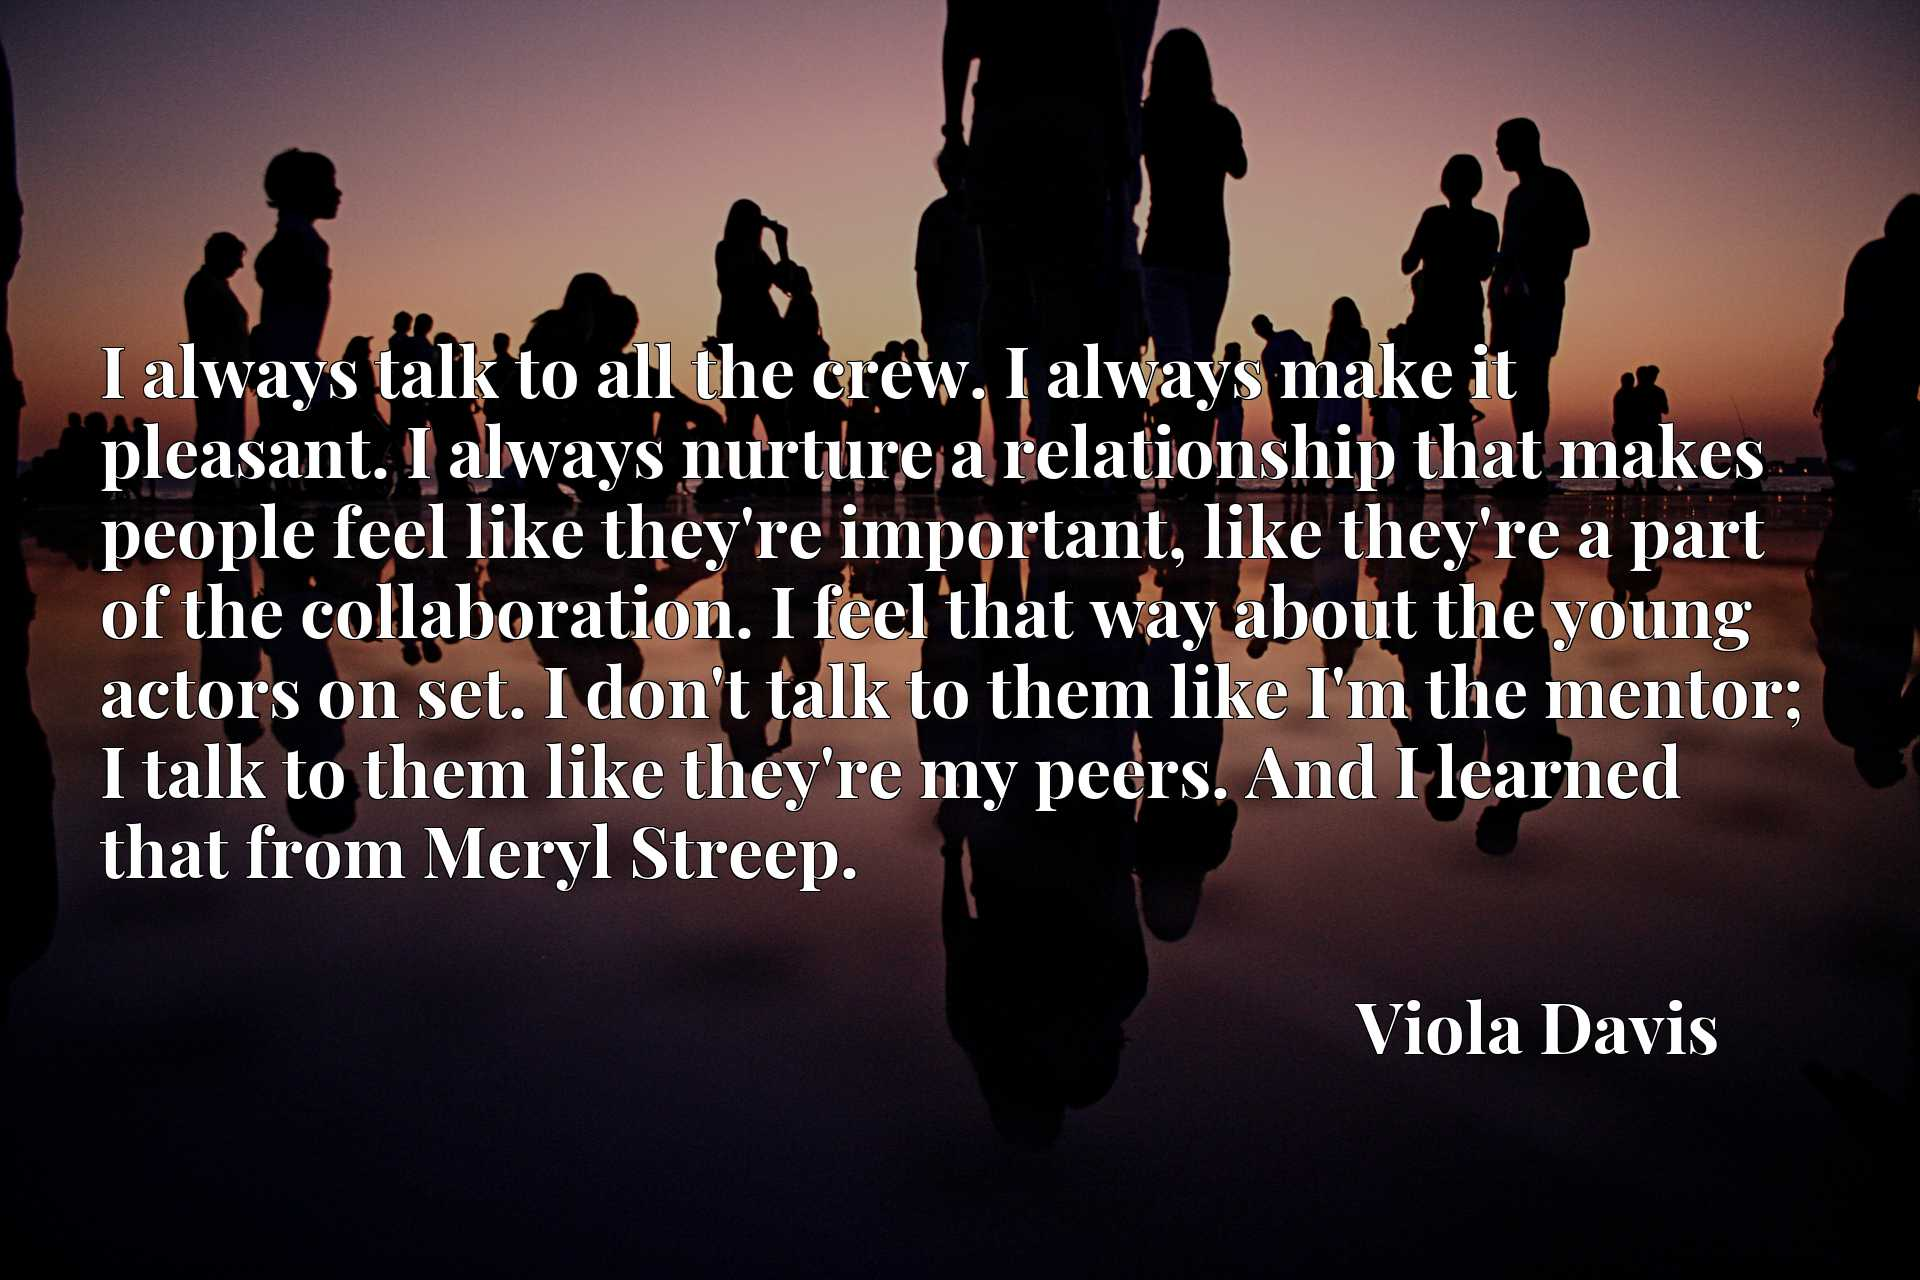 I always talk to all the crew. I always make it pleasant. I always nurture a relationship that makes people feel like they're important, like they're a part of the collaboration. I feel that way about the young actors on set. I don't talk to them like I'm the mentor; I talk to them like they're my peers. And I learned that from Meryl Streep.